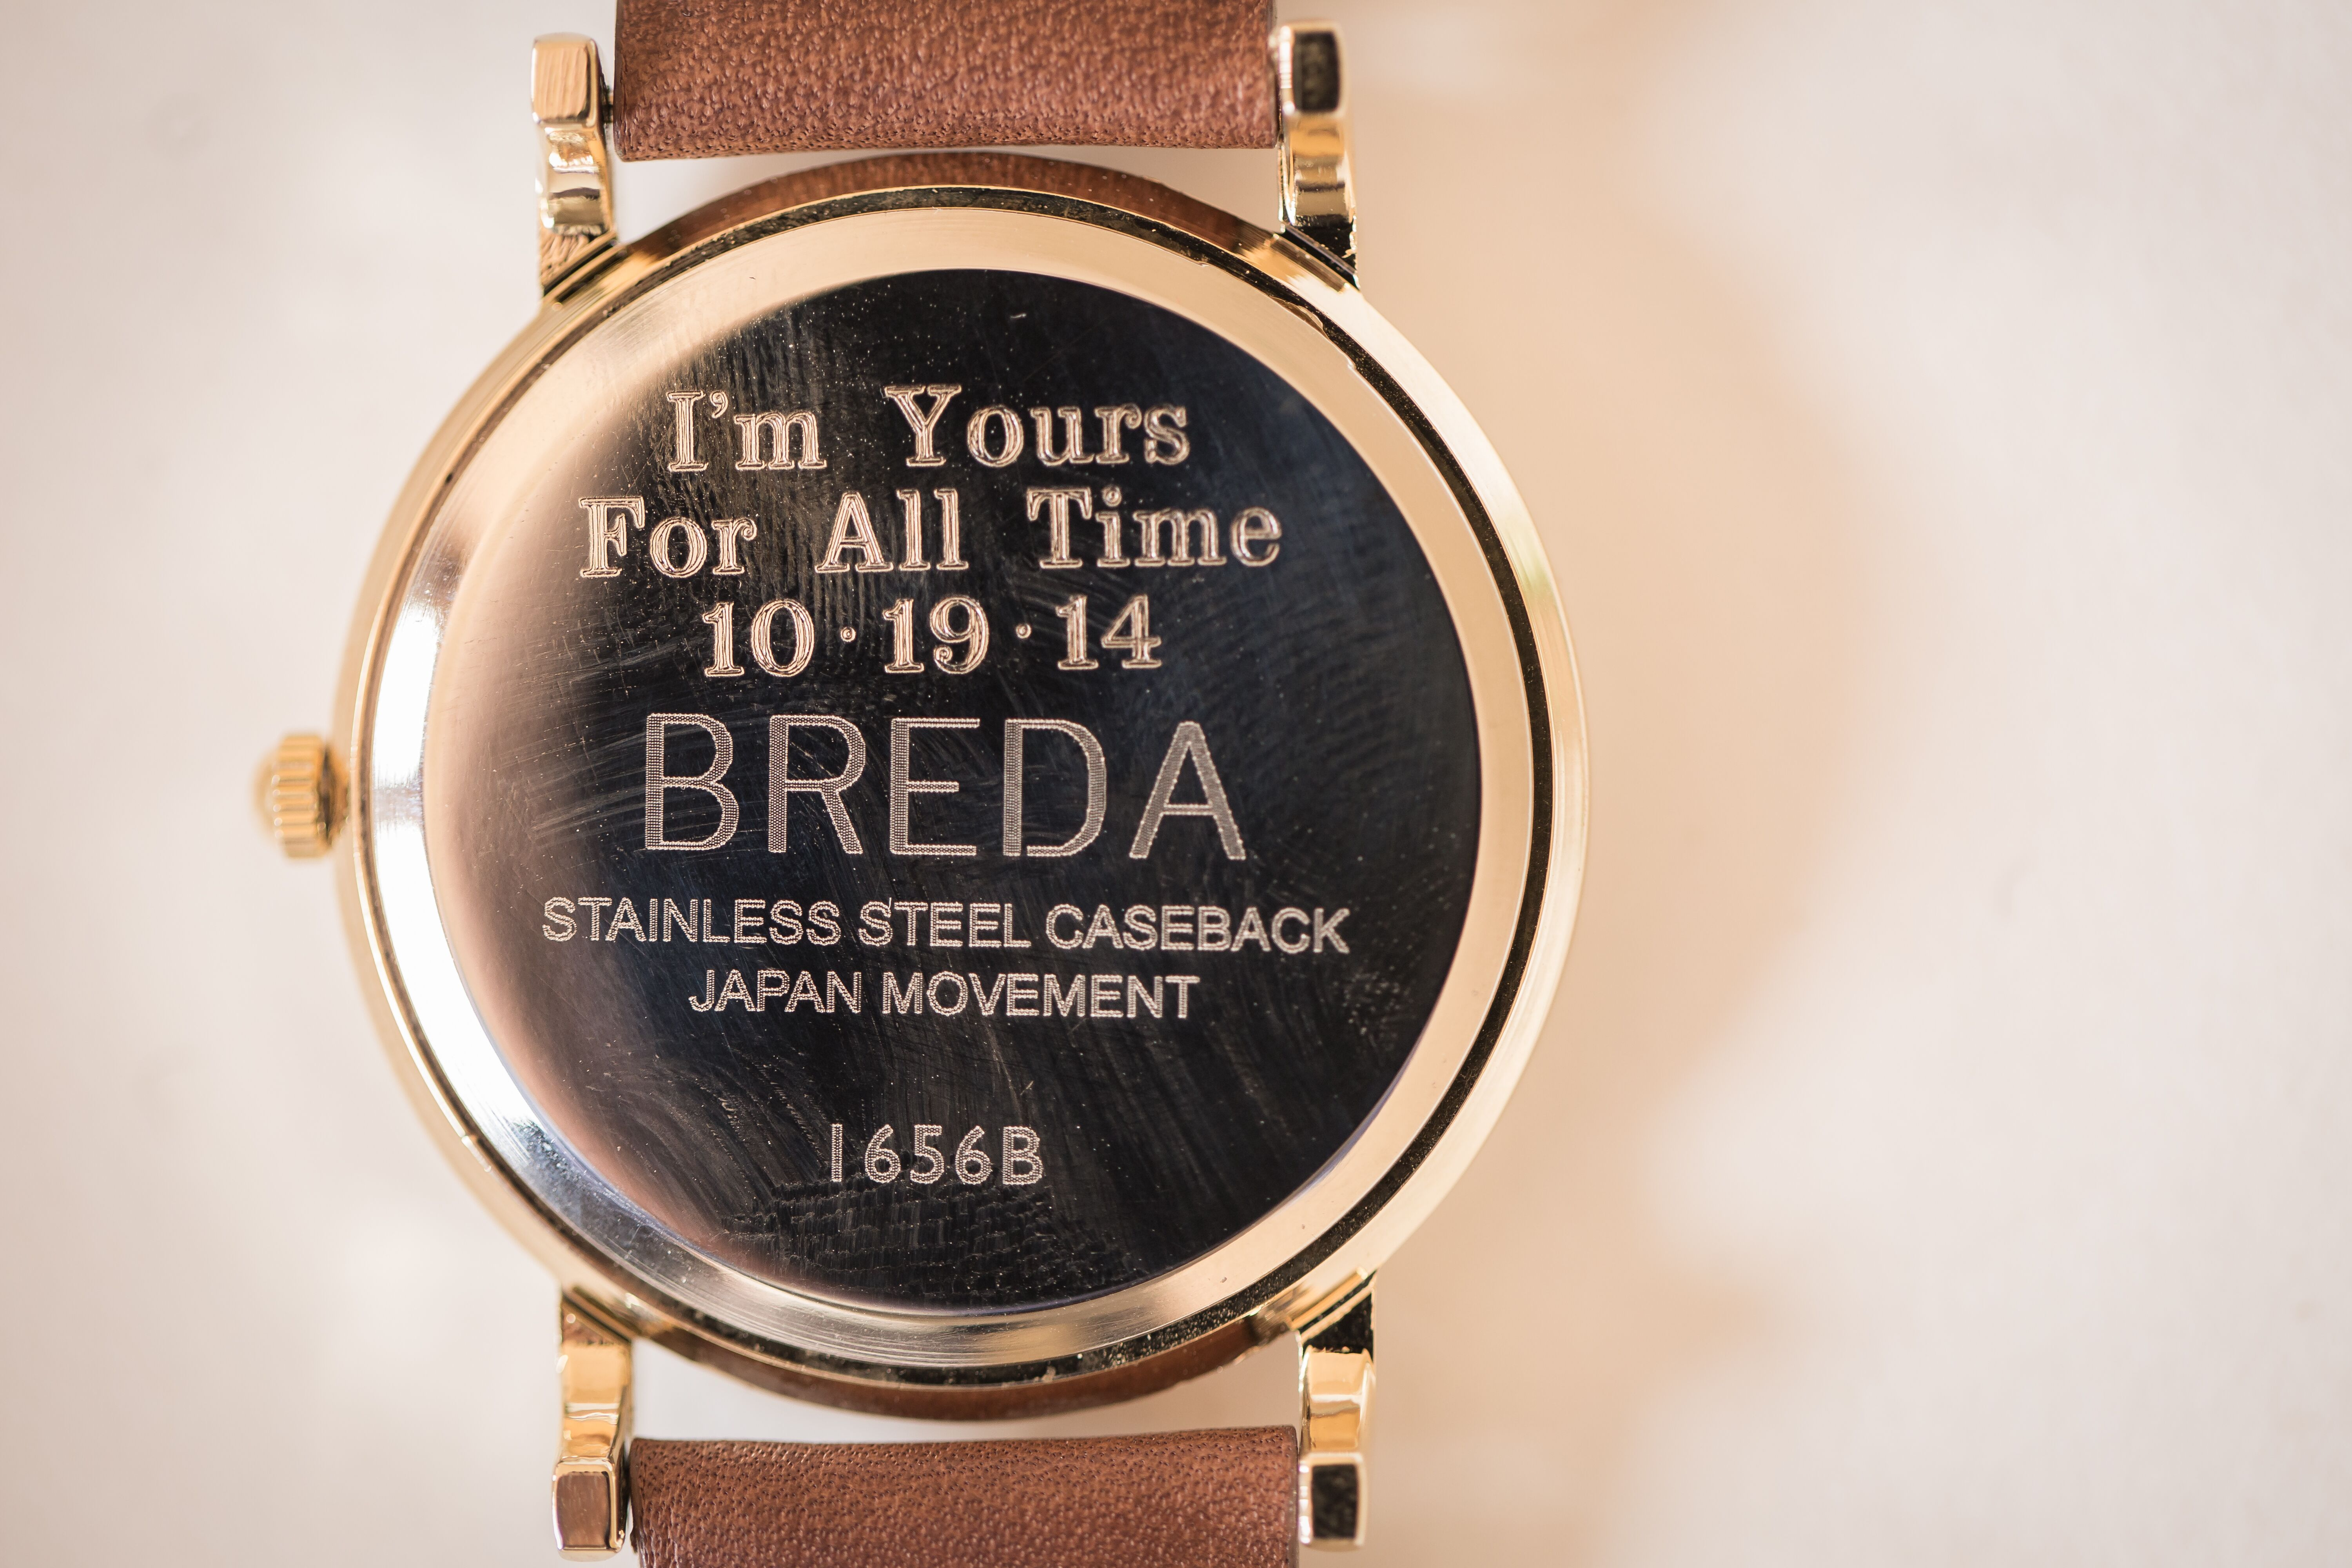 Watch As Wedding Gift: An Engraved Watch For A Groom's Gift